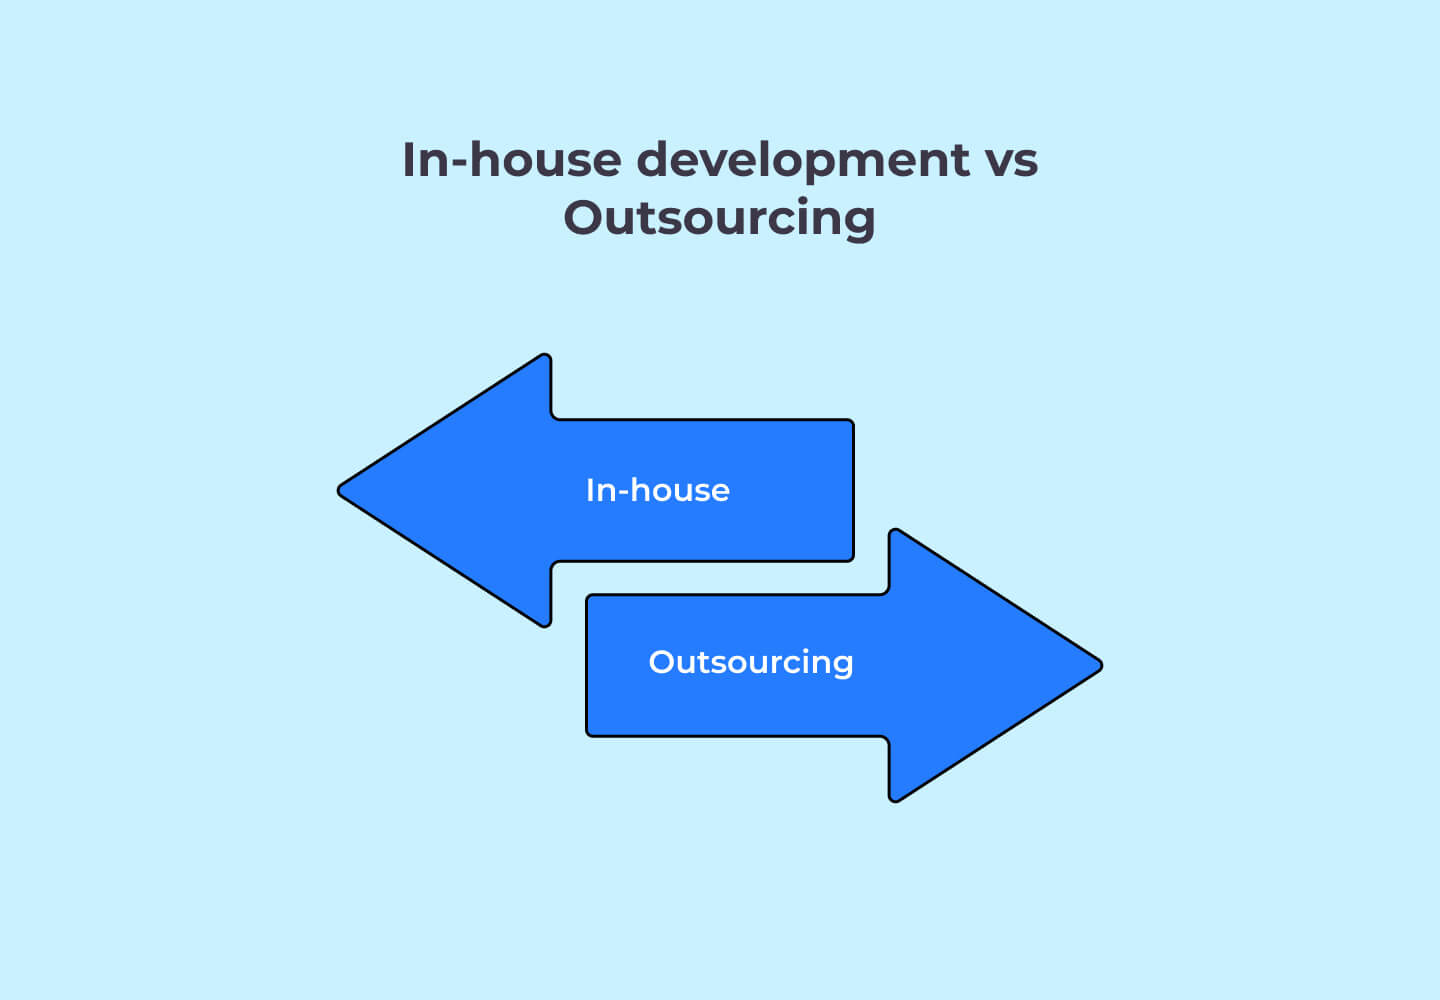 In-house development vs Outsourcing